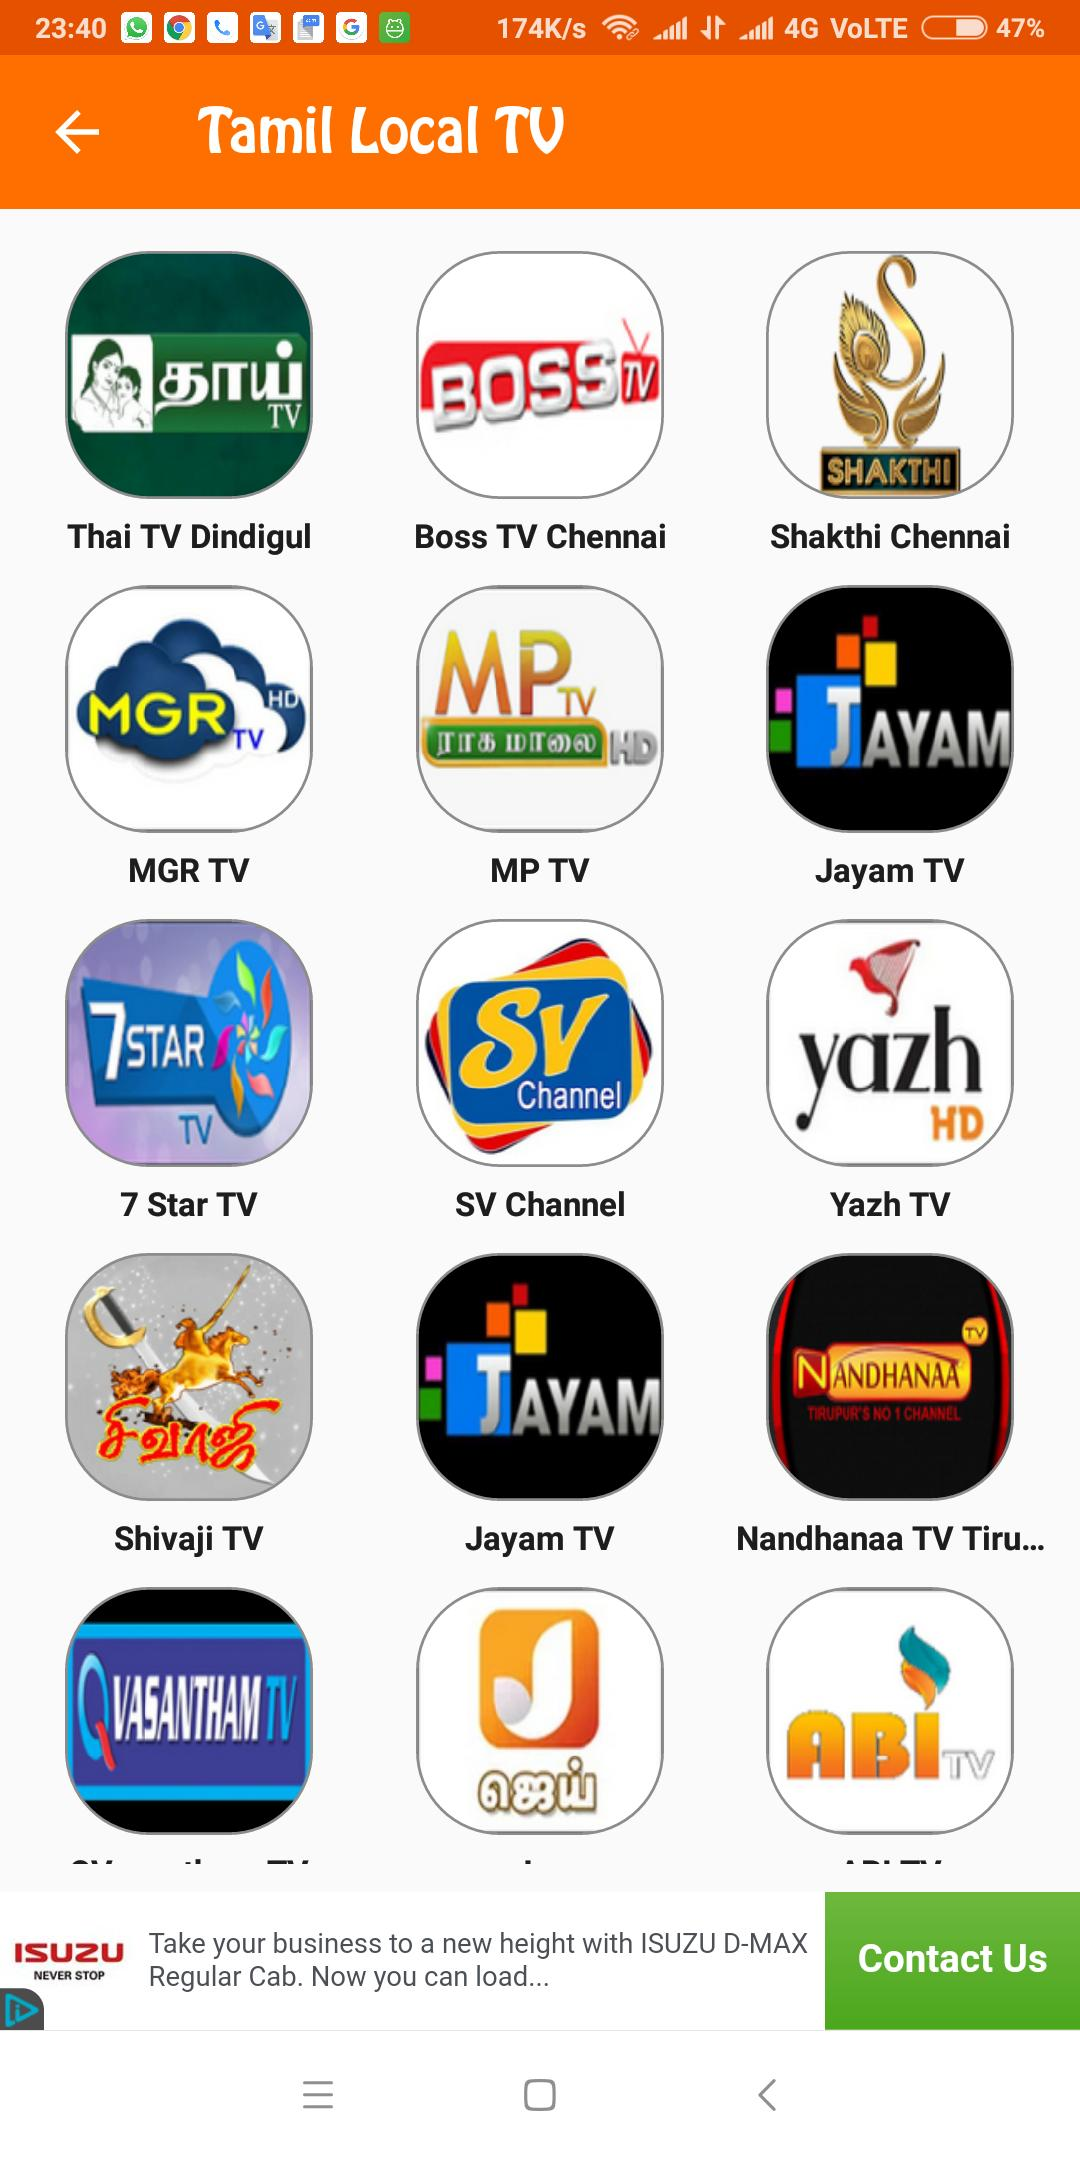 Tamil TV for Android - APK Download